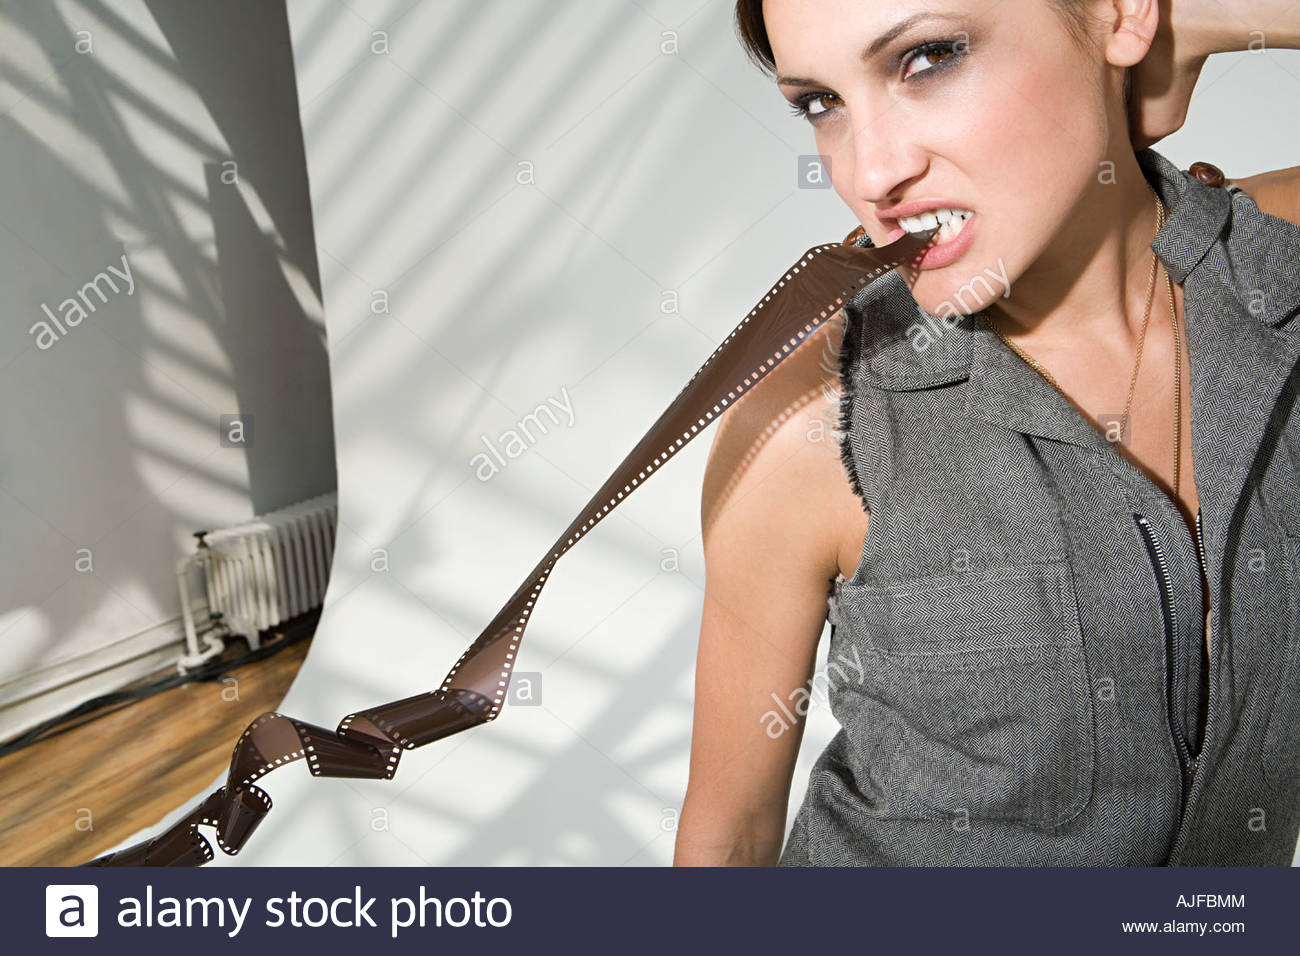 Woman biting on photographic film - Stock Image